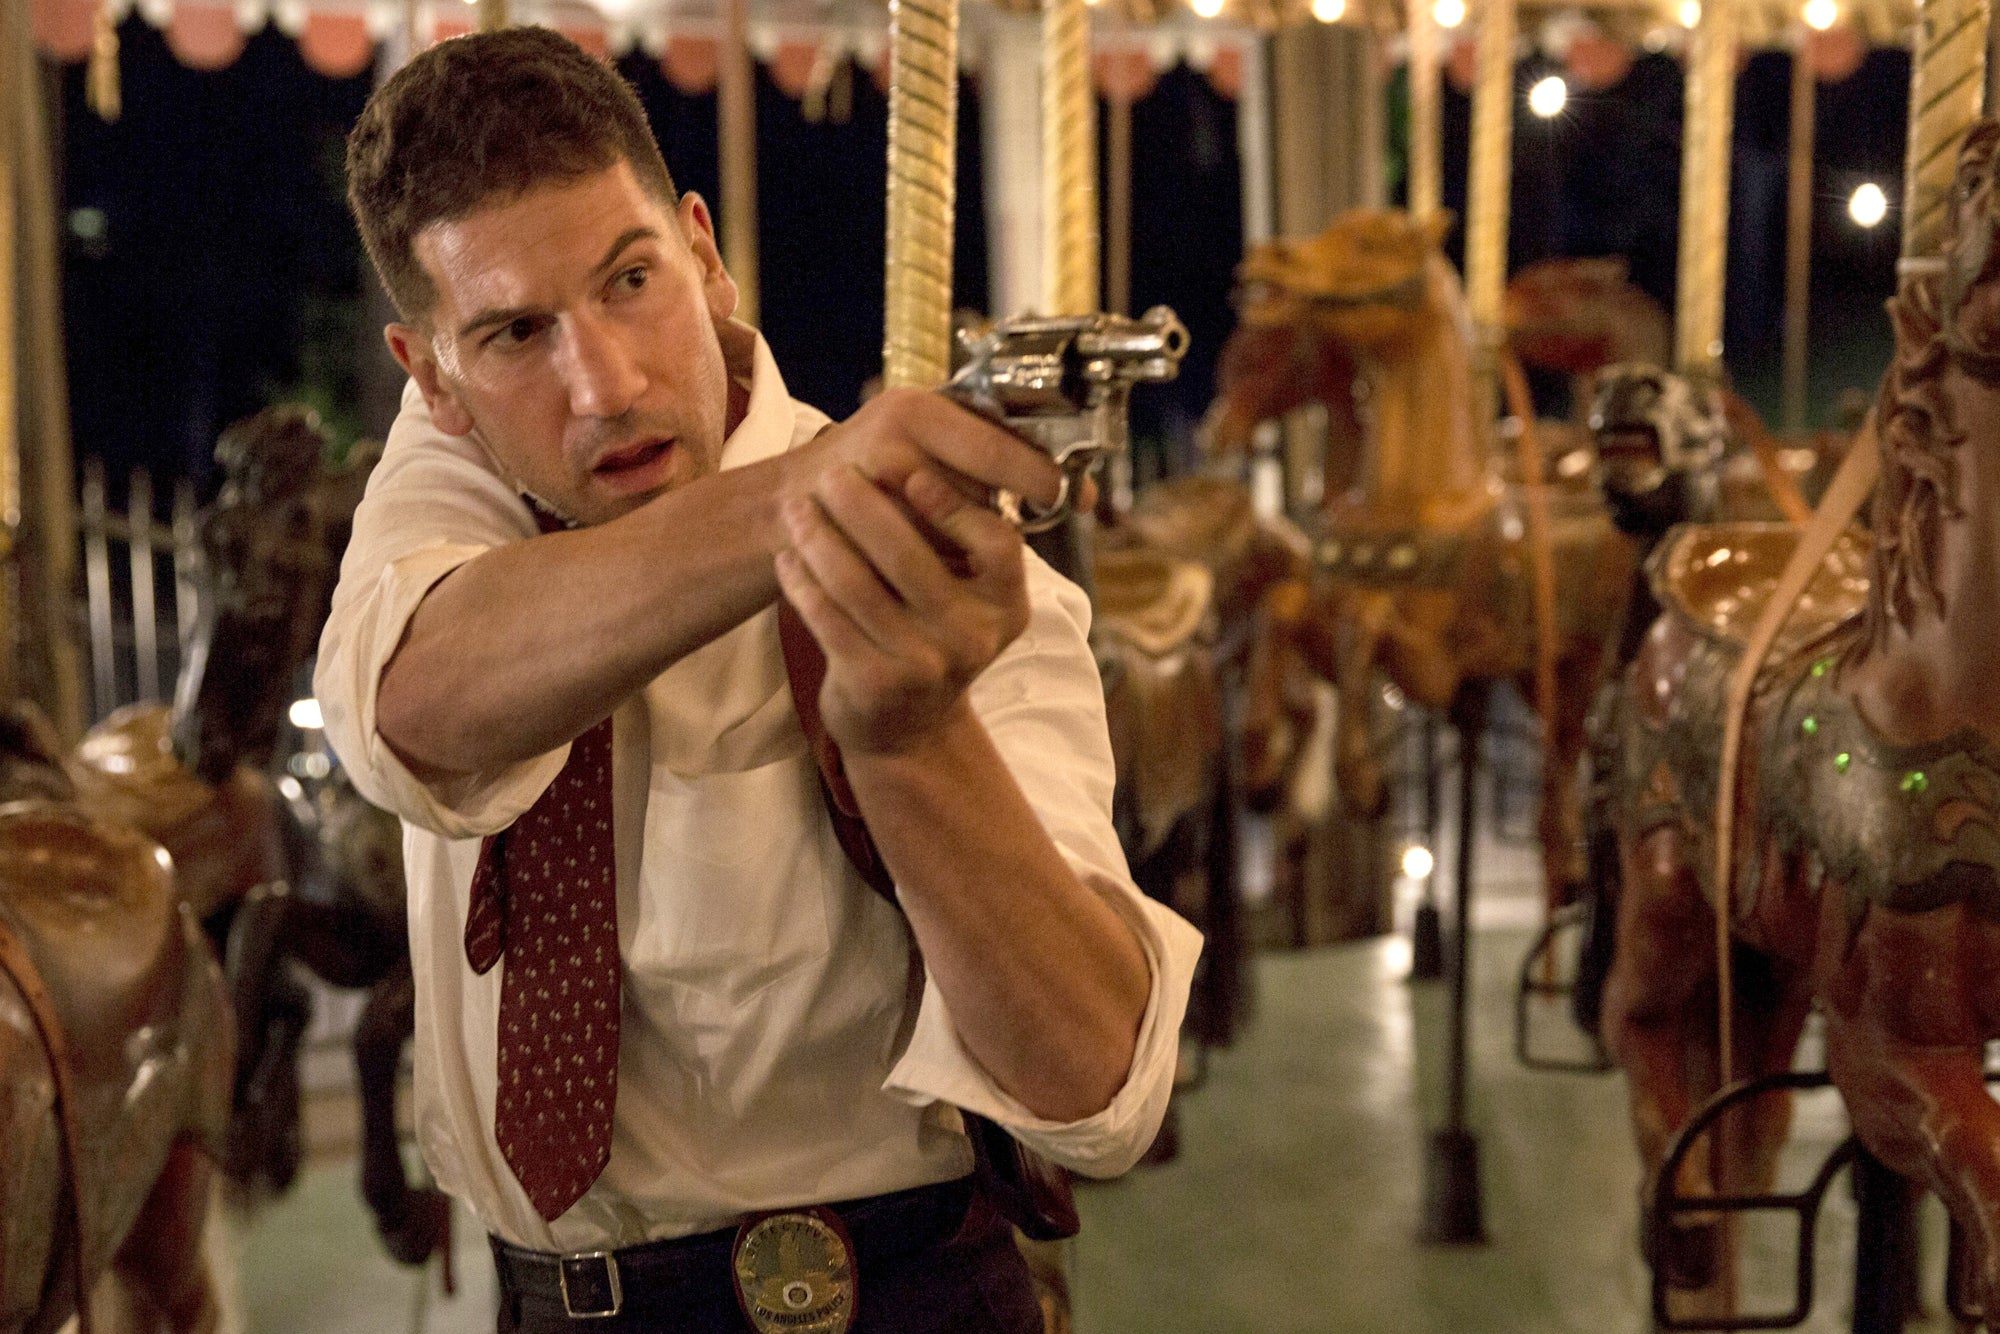 http://comicbook.com/wp-content/uploads/2013/11/mob-city-jon-bernthal.jpg